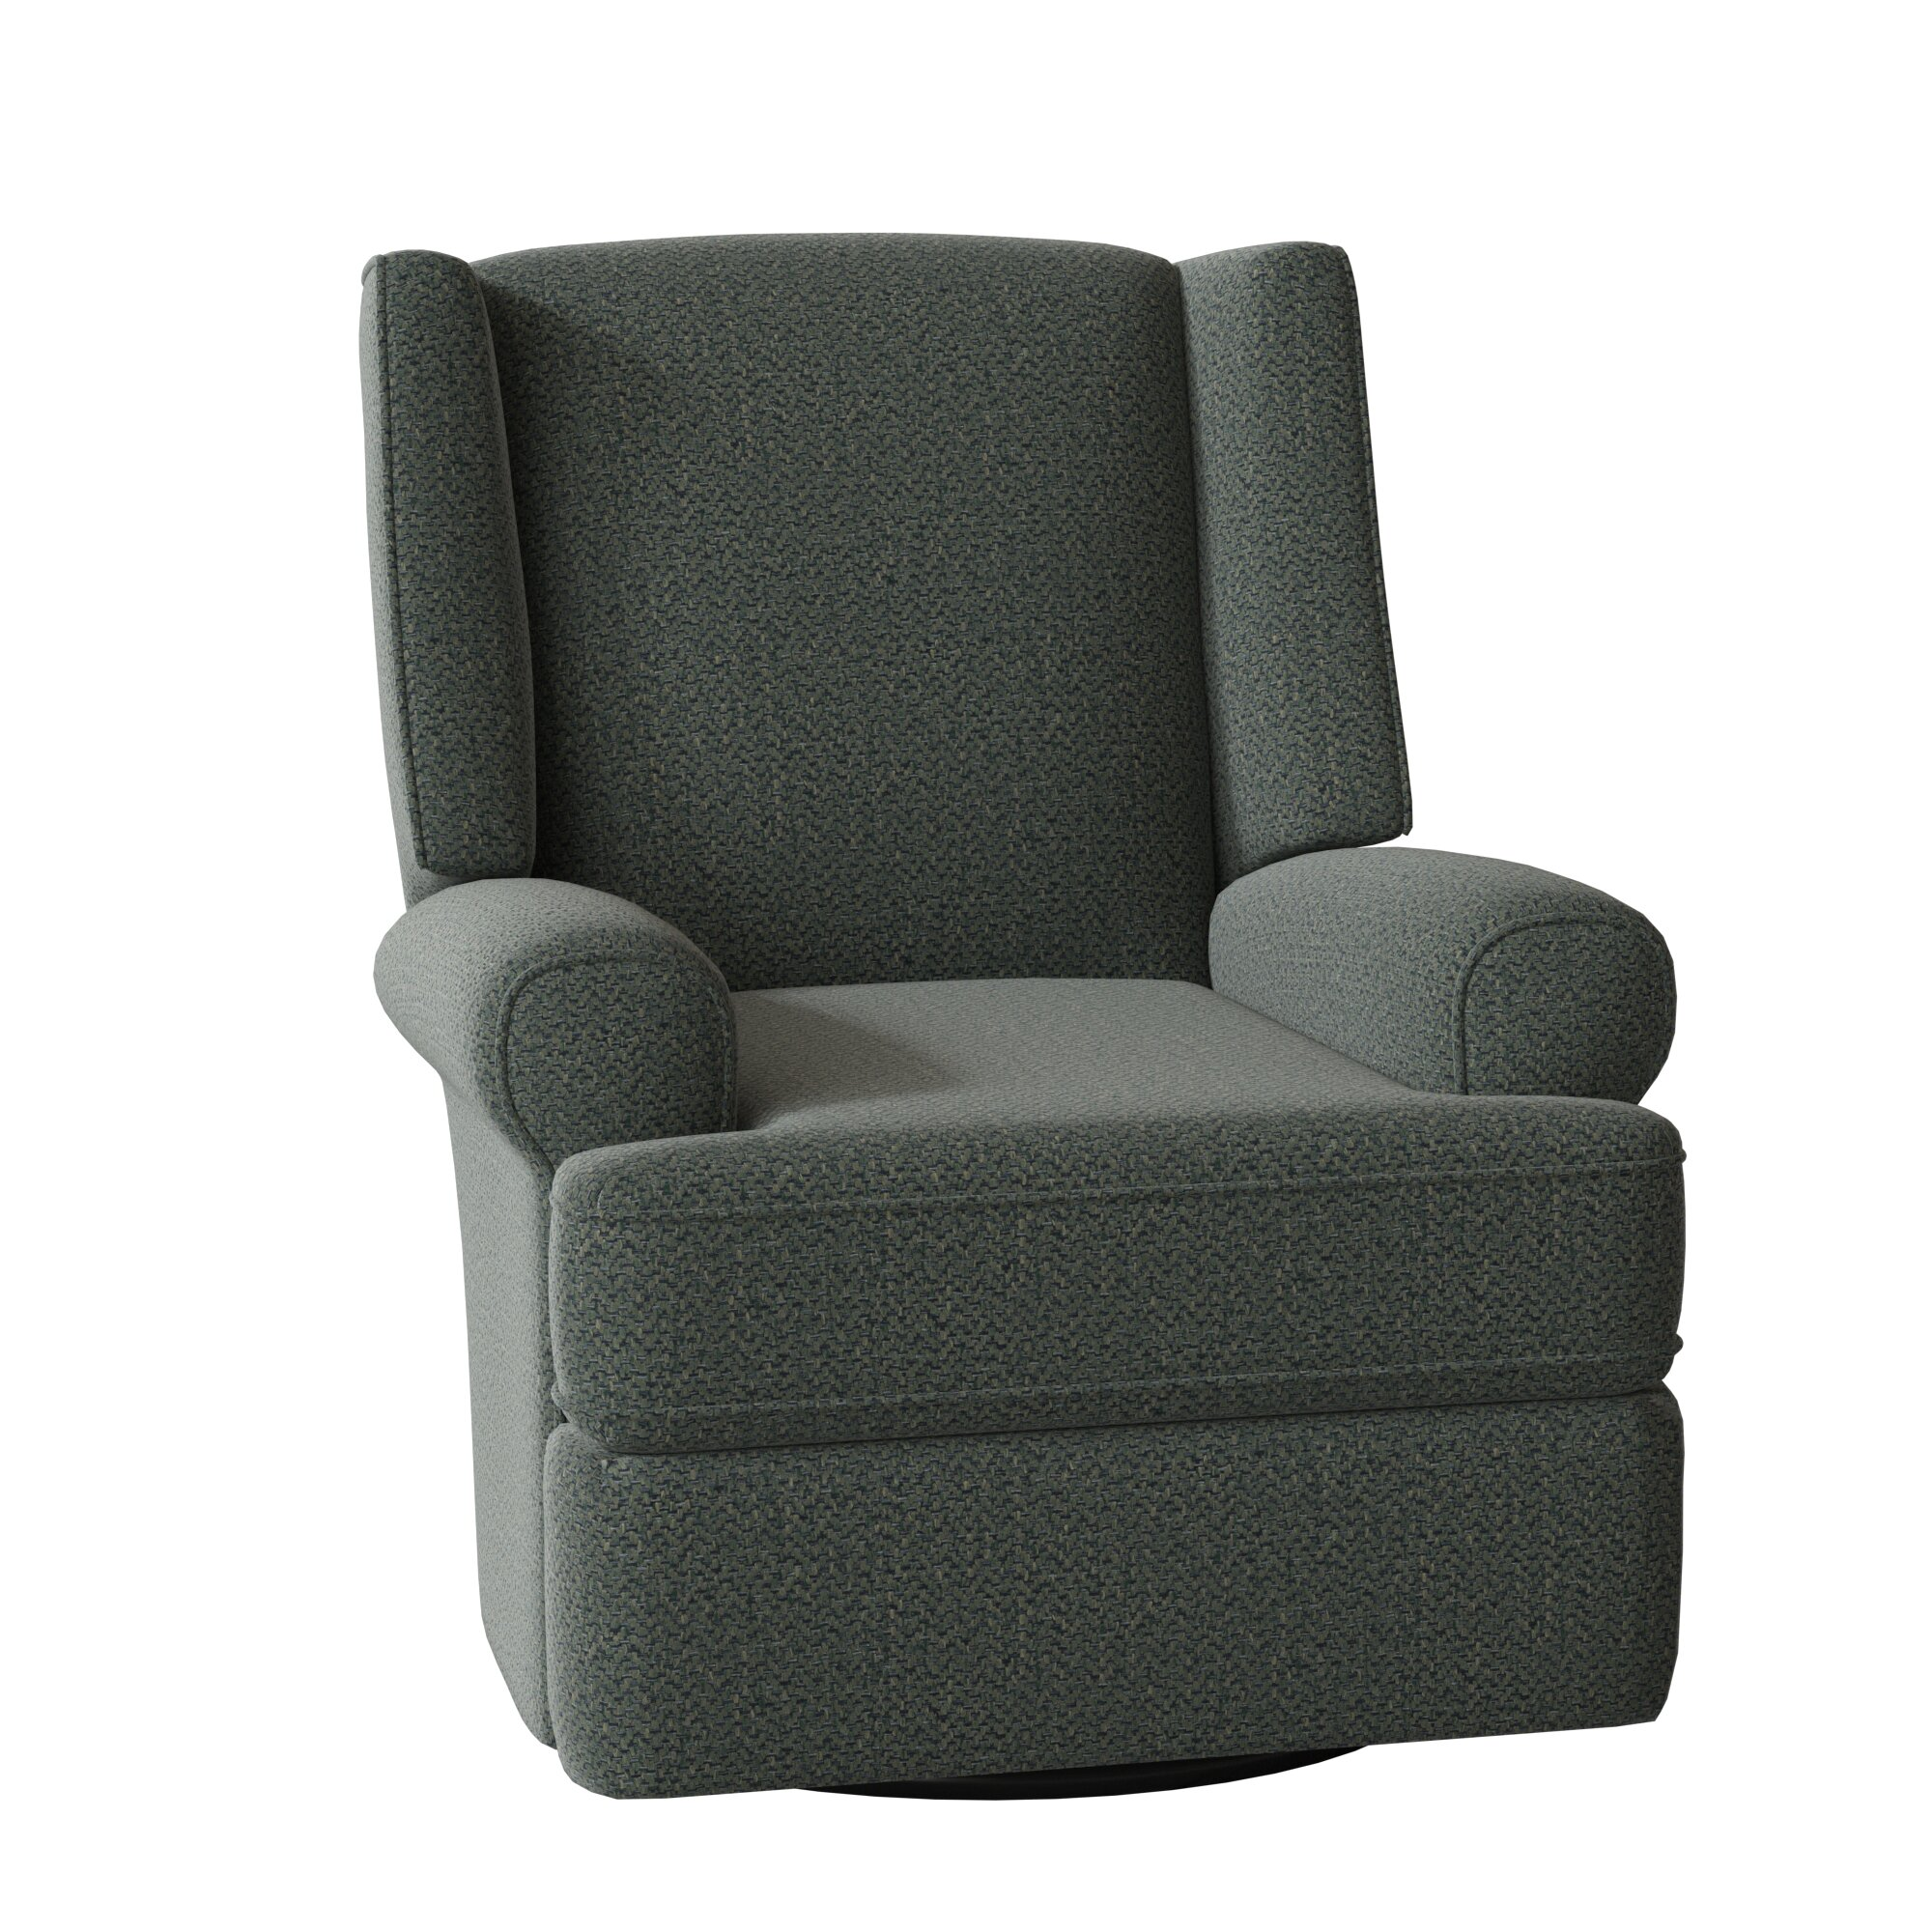 Keya Wingback Manual Swivel Glider Recliner